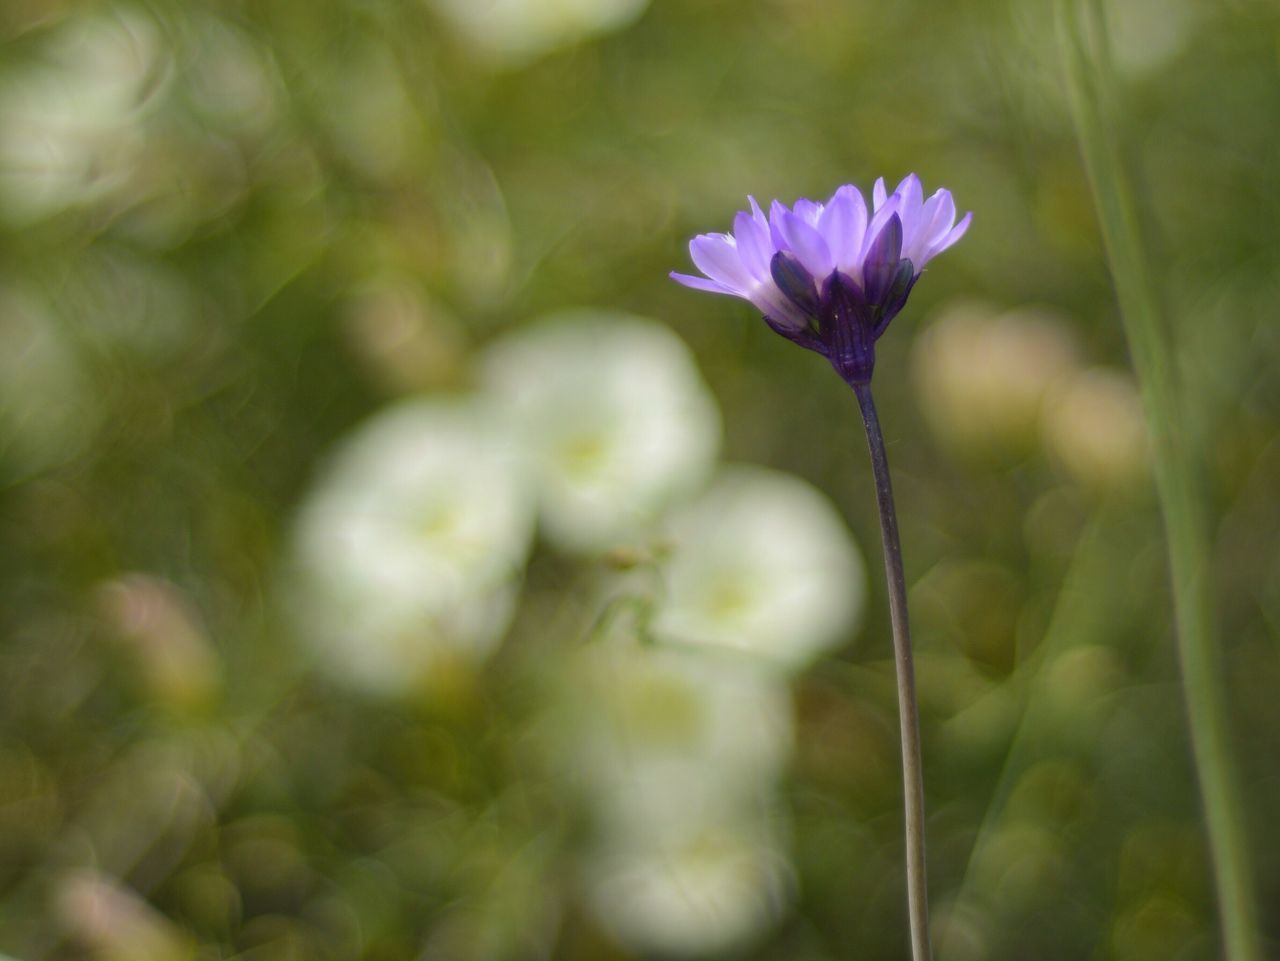 Flower Nature Beauty In Nature Fragility Growth Freshness Petal Close-up Purple Outdoors Blooming Plant Flower Head No People Day